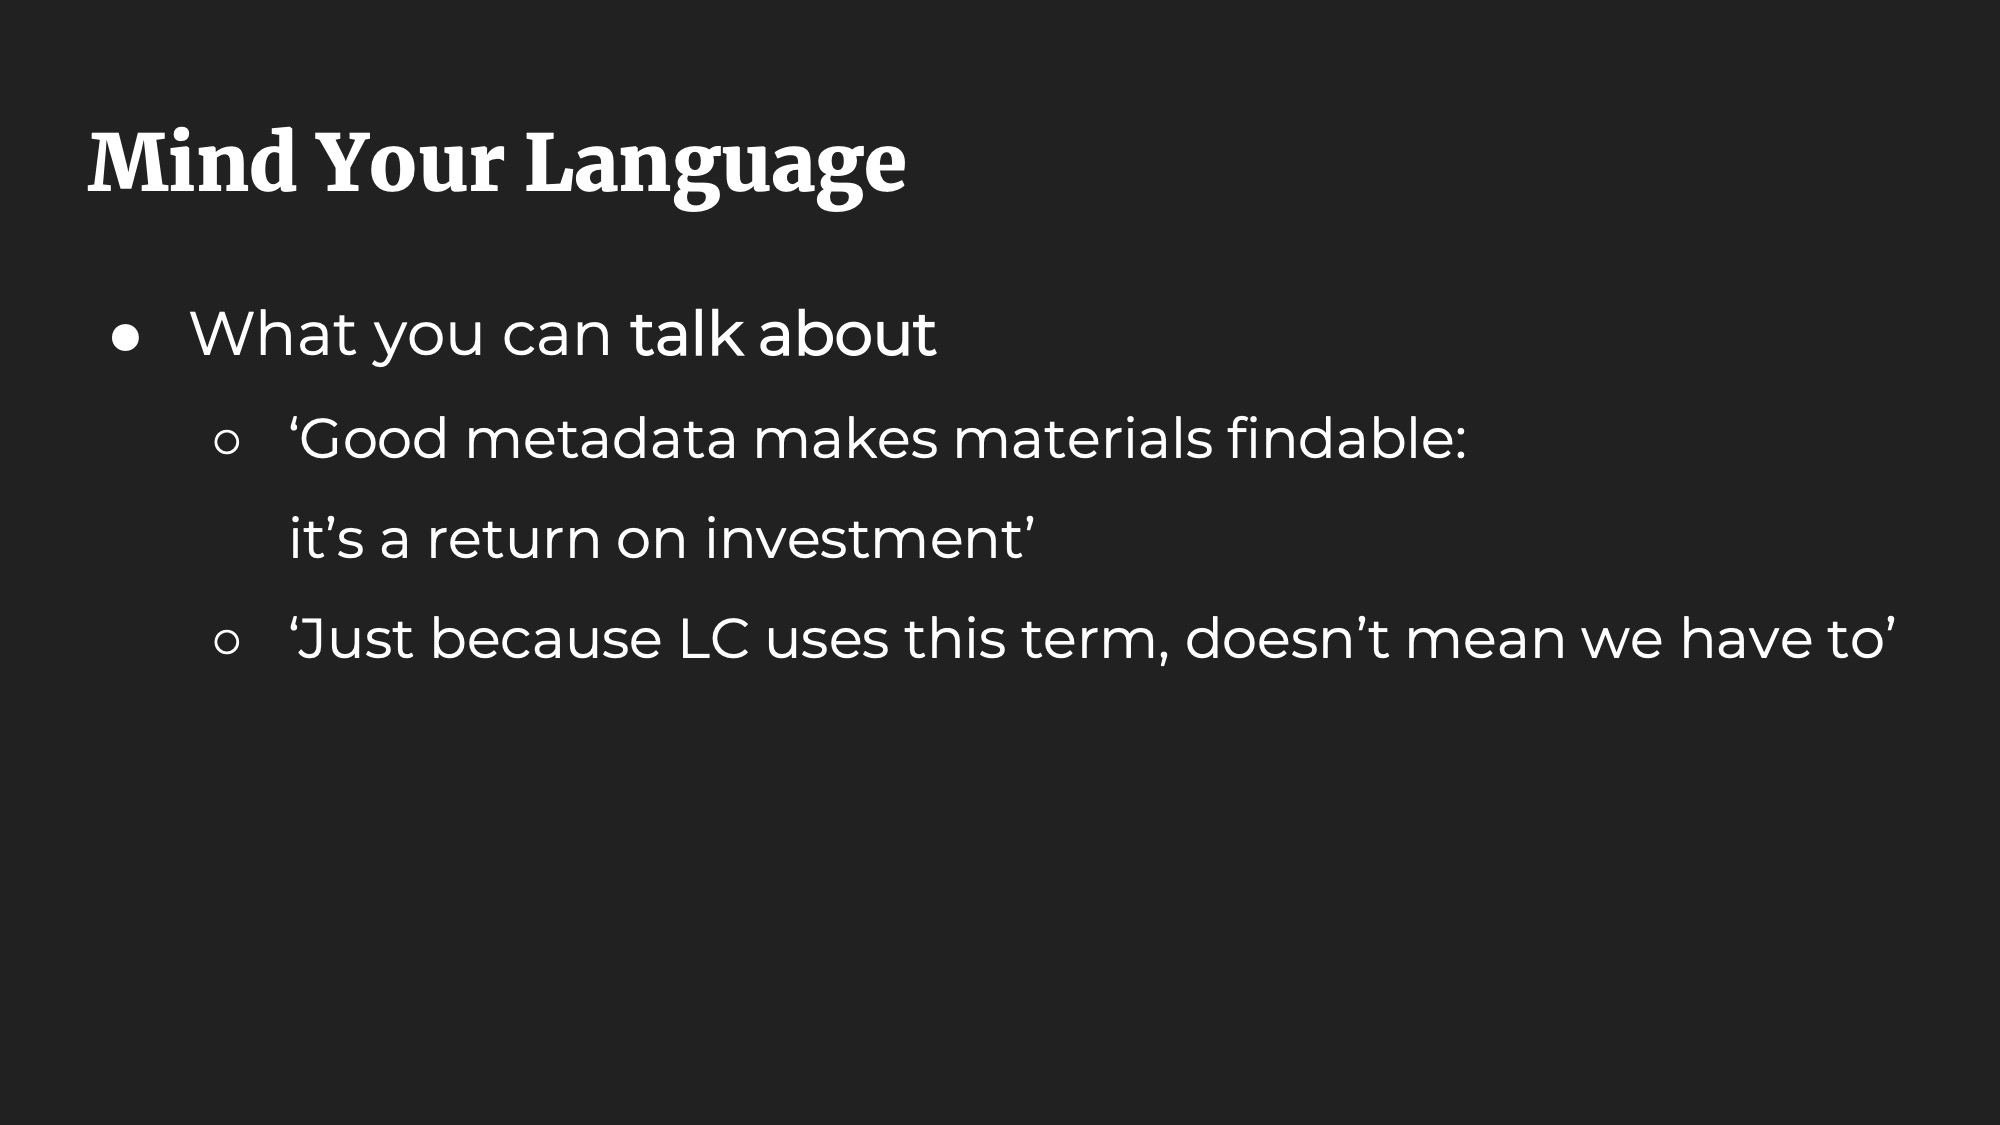 Mind Your Language. What you can talk about: 'Good metadata makes materials findable: it's a return on investment'. 'Just because LC uses this term, doesn't mean we have to'